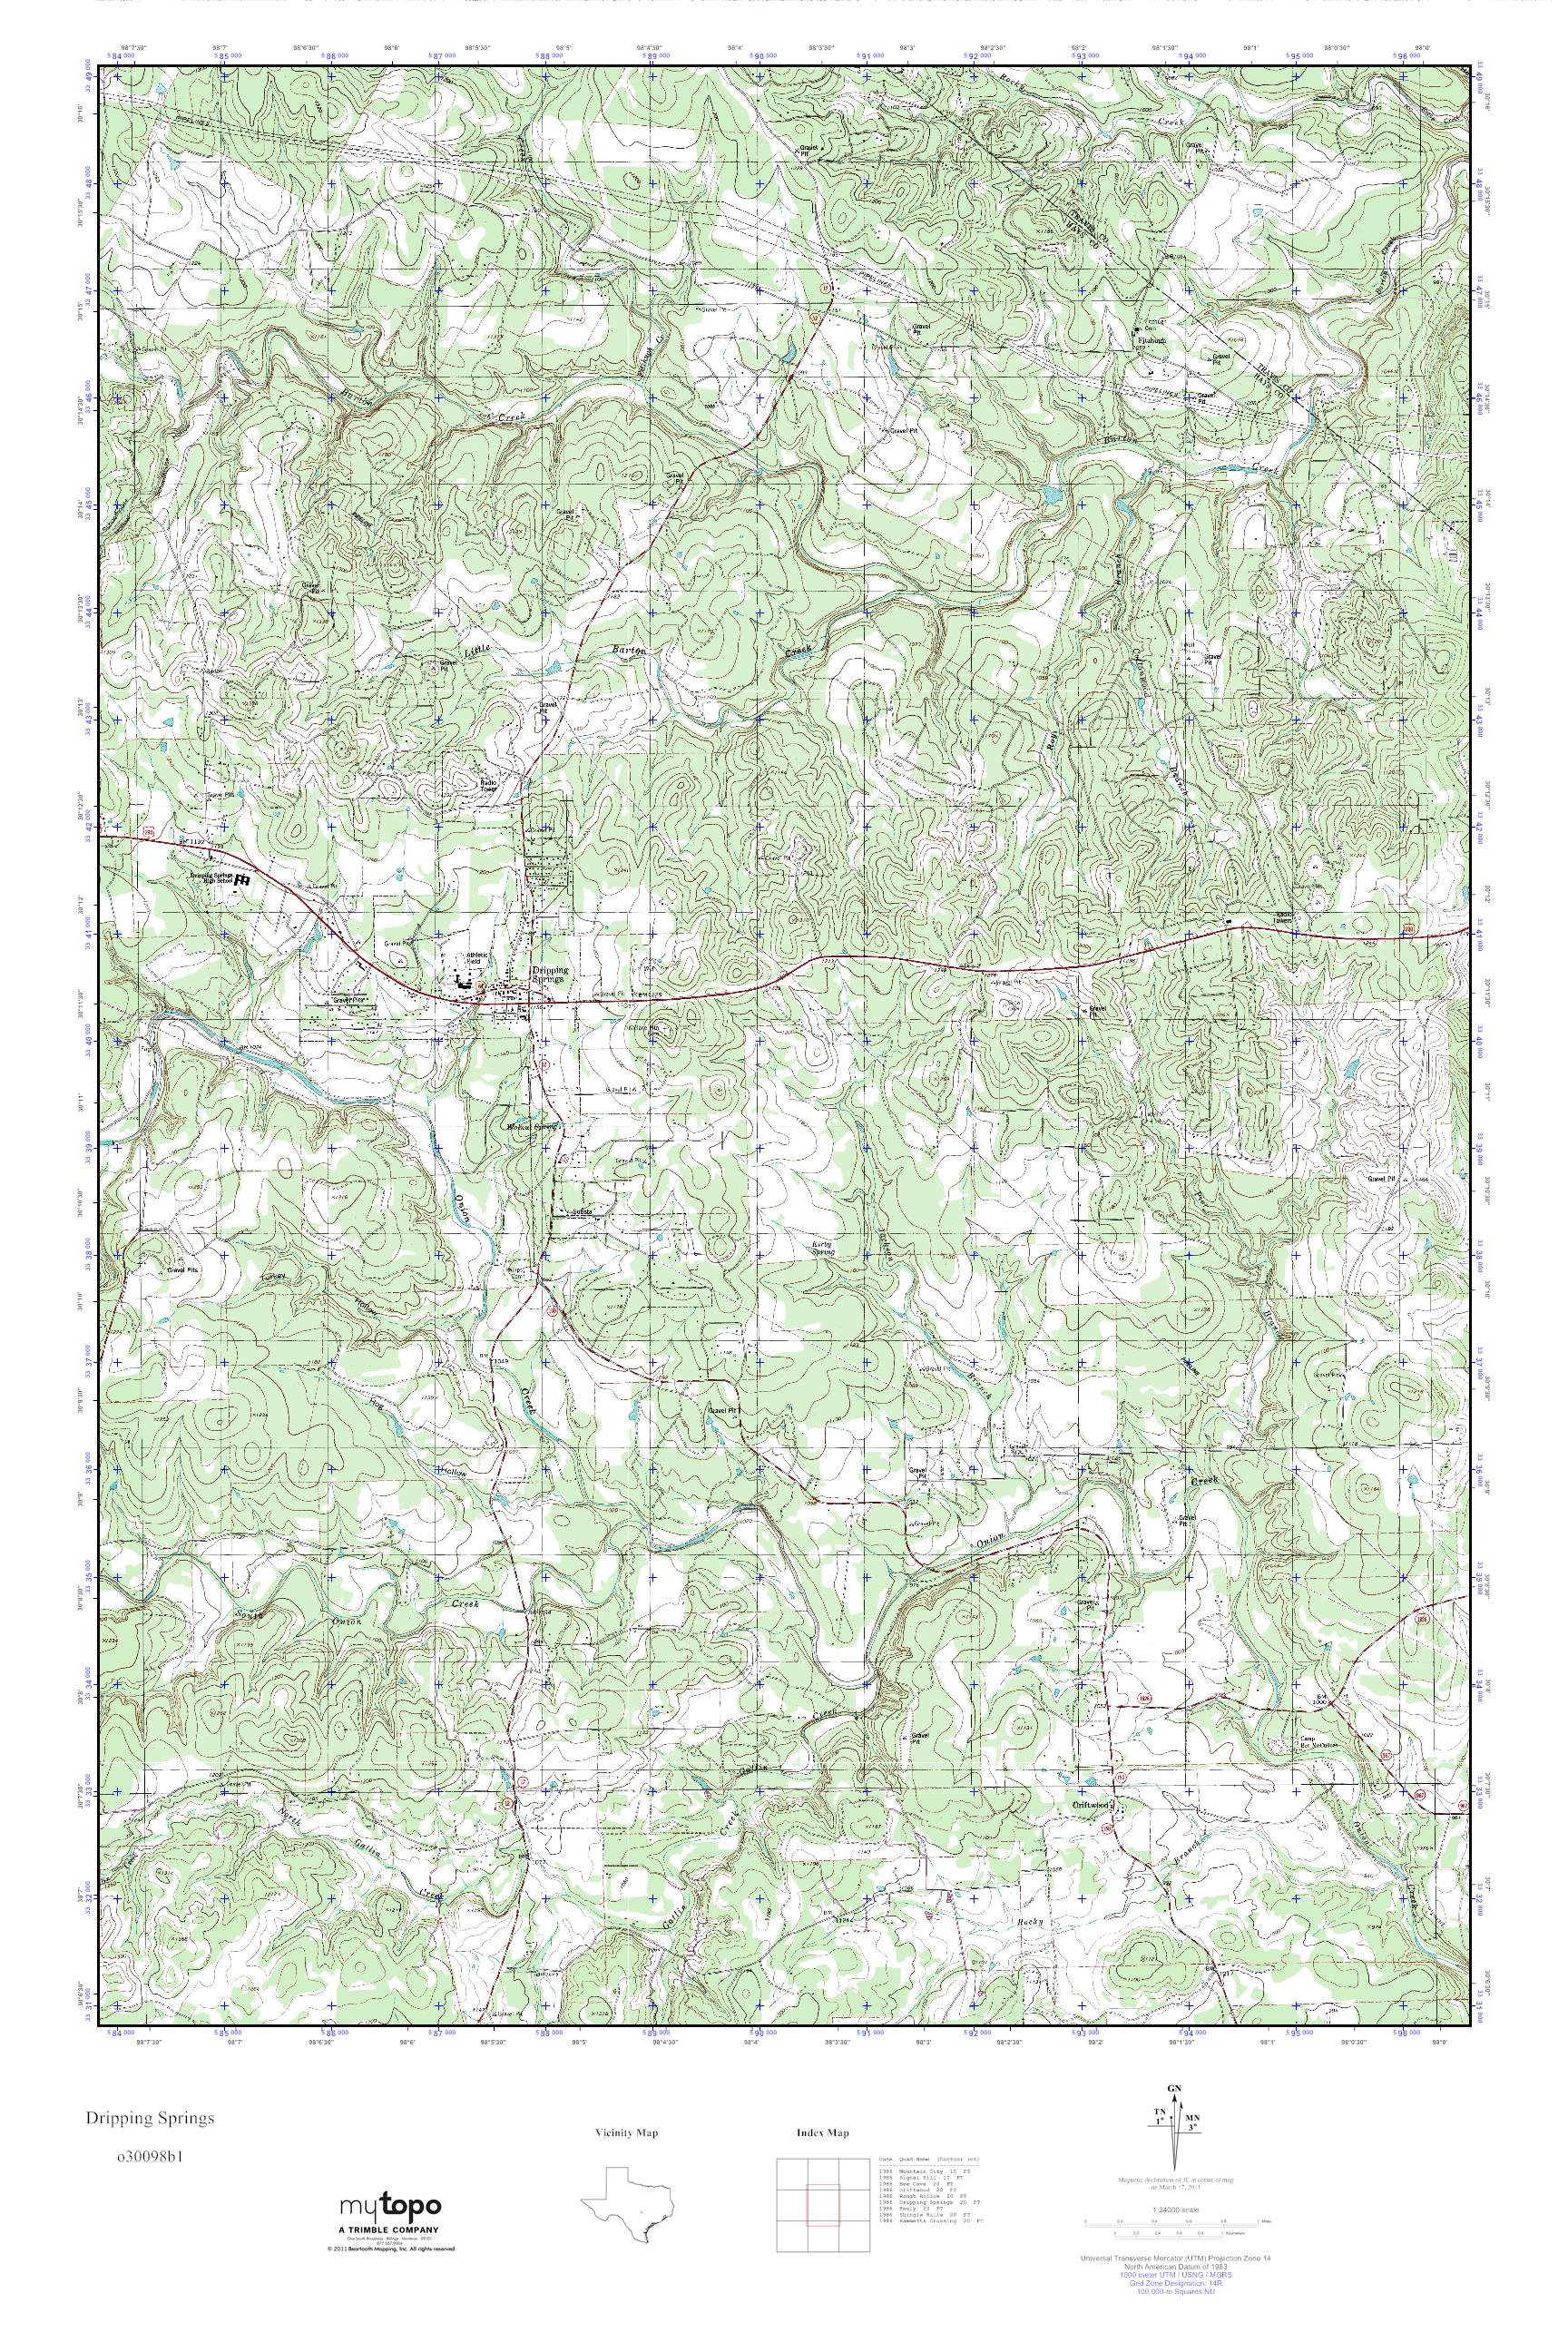 MyTopo Dripping Springs, Texas USGS Quad Topo Map on